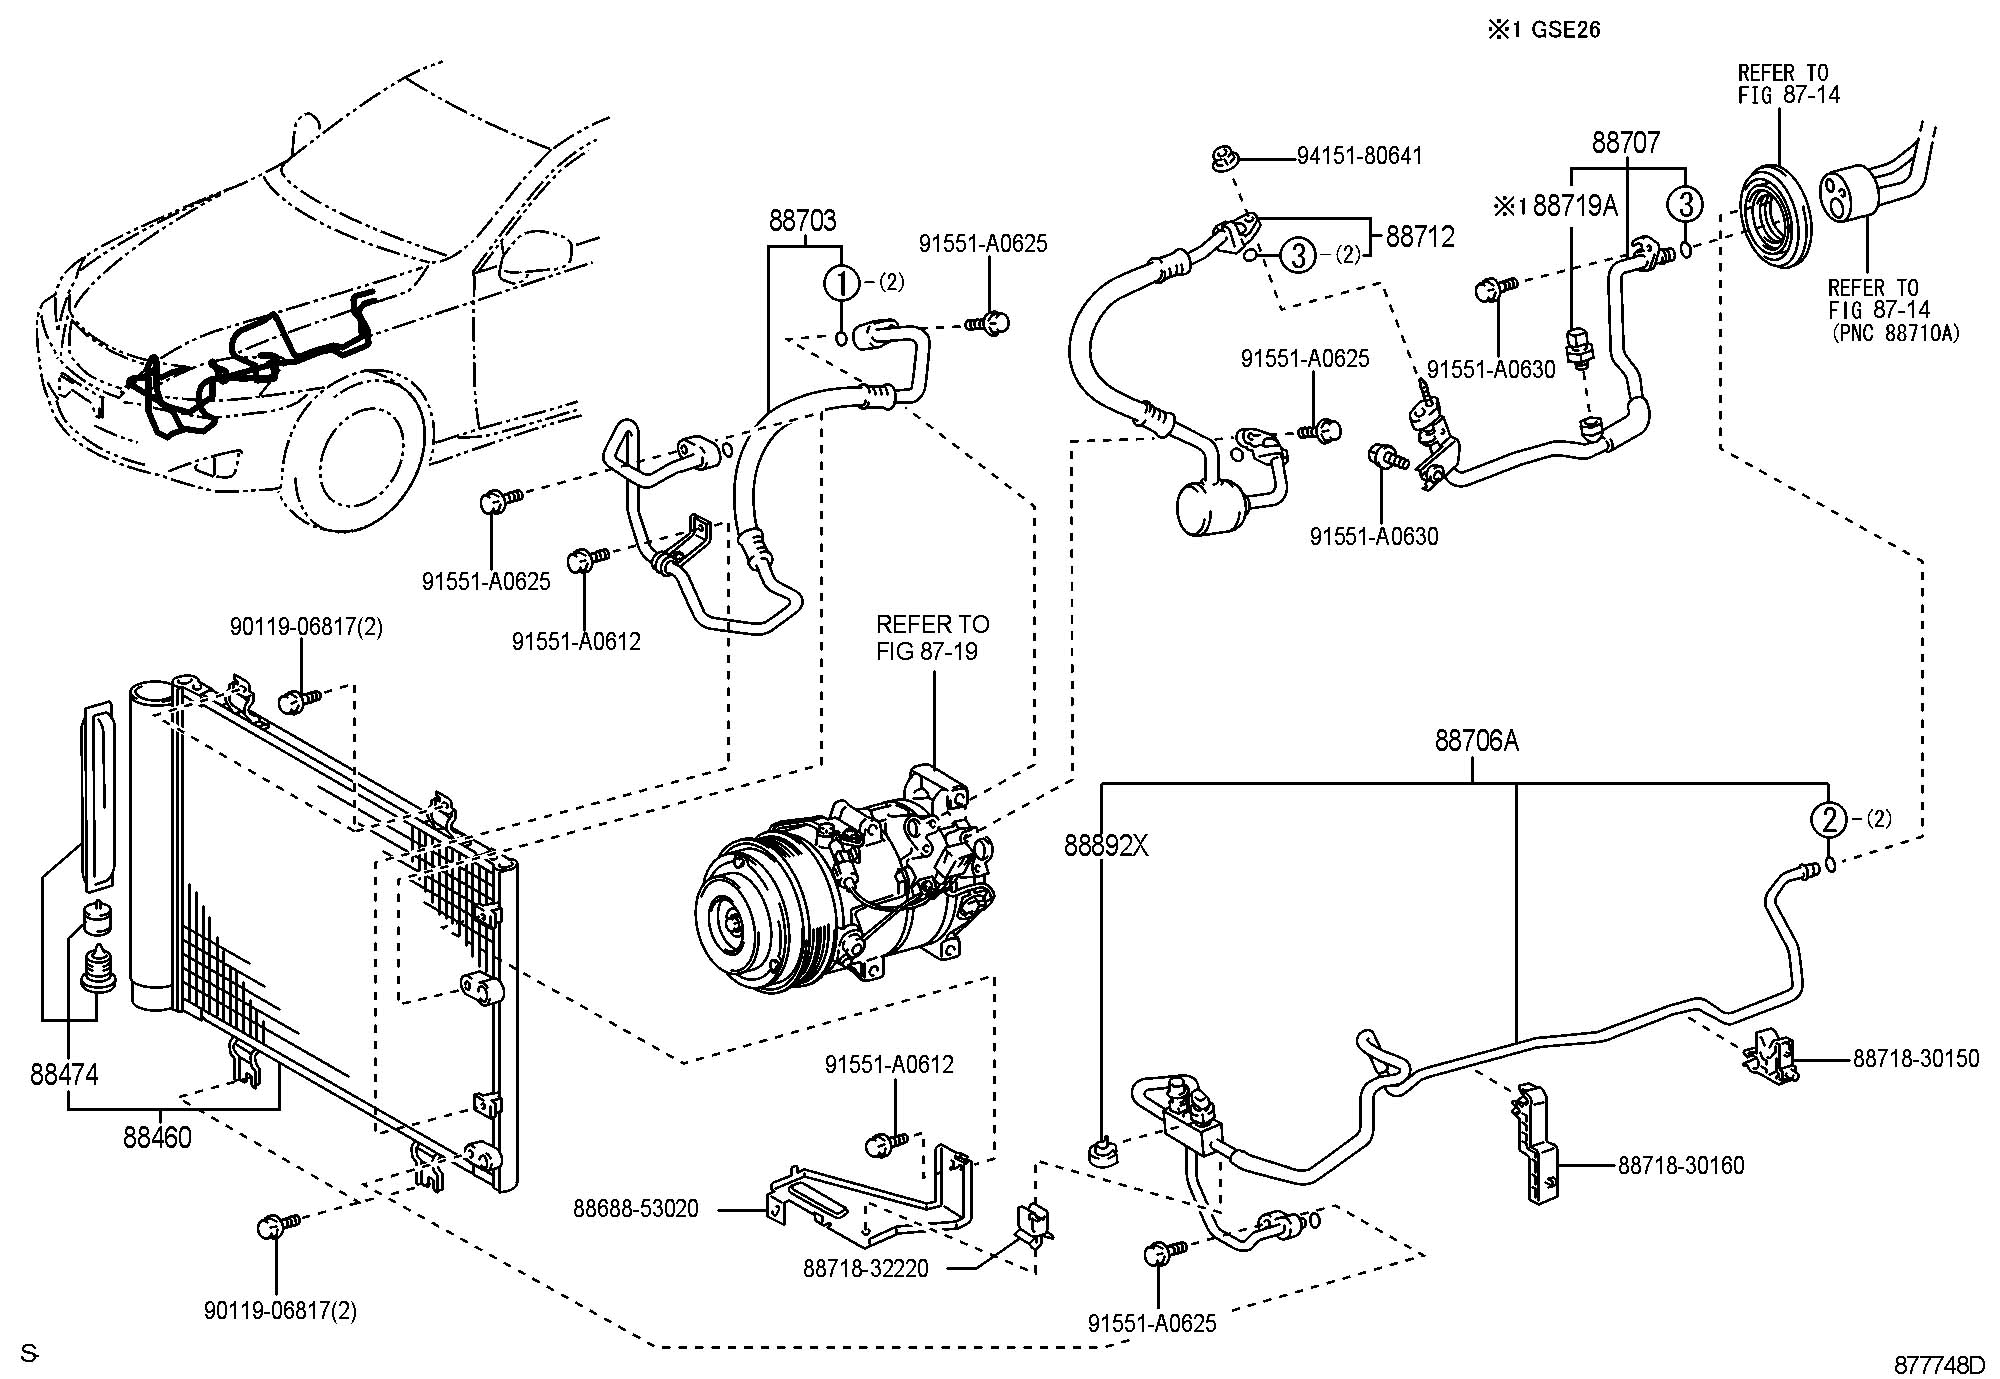 97 Jeep Wrangler Fuse Box Diagram. Jeep. Auto Fuse Box Diagram